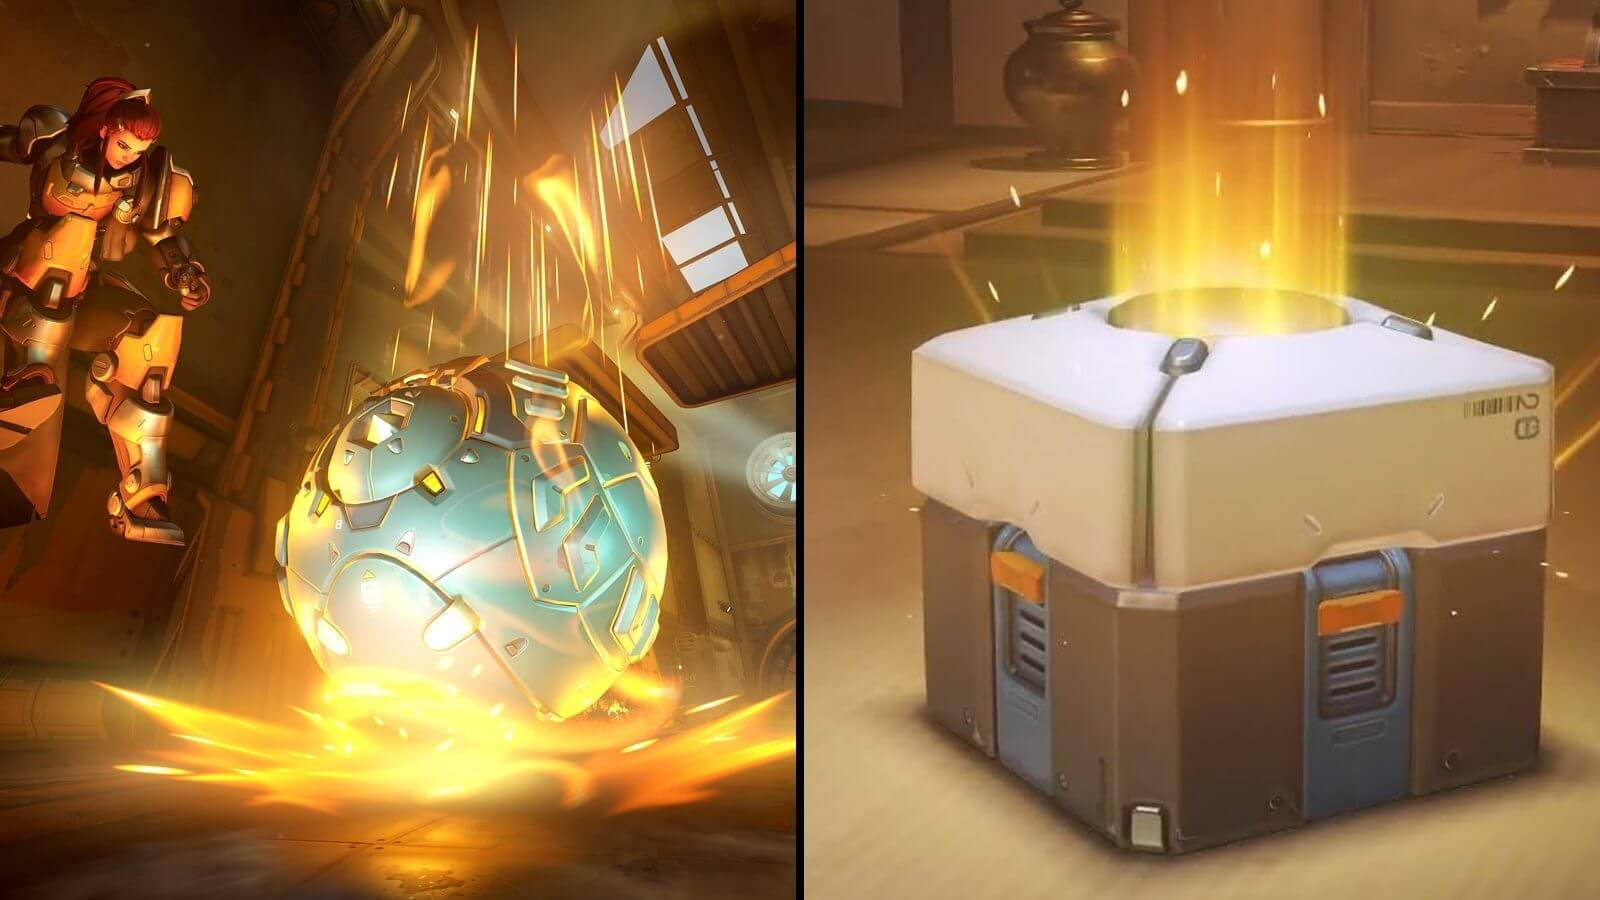 Will Australia Ban Loot Boxes in Gaming: The Future of Microtransactions